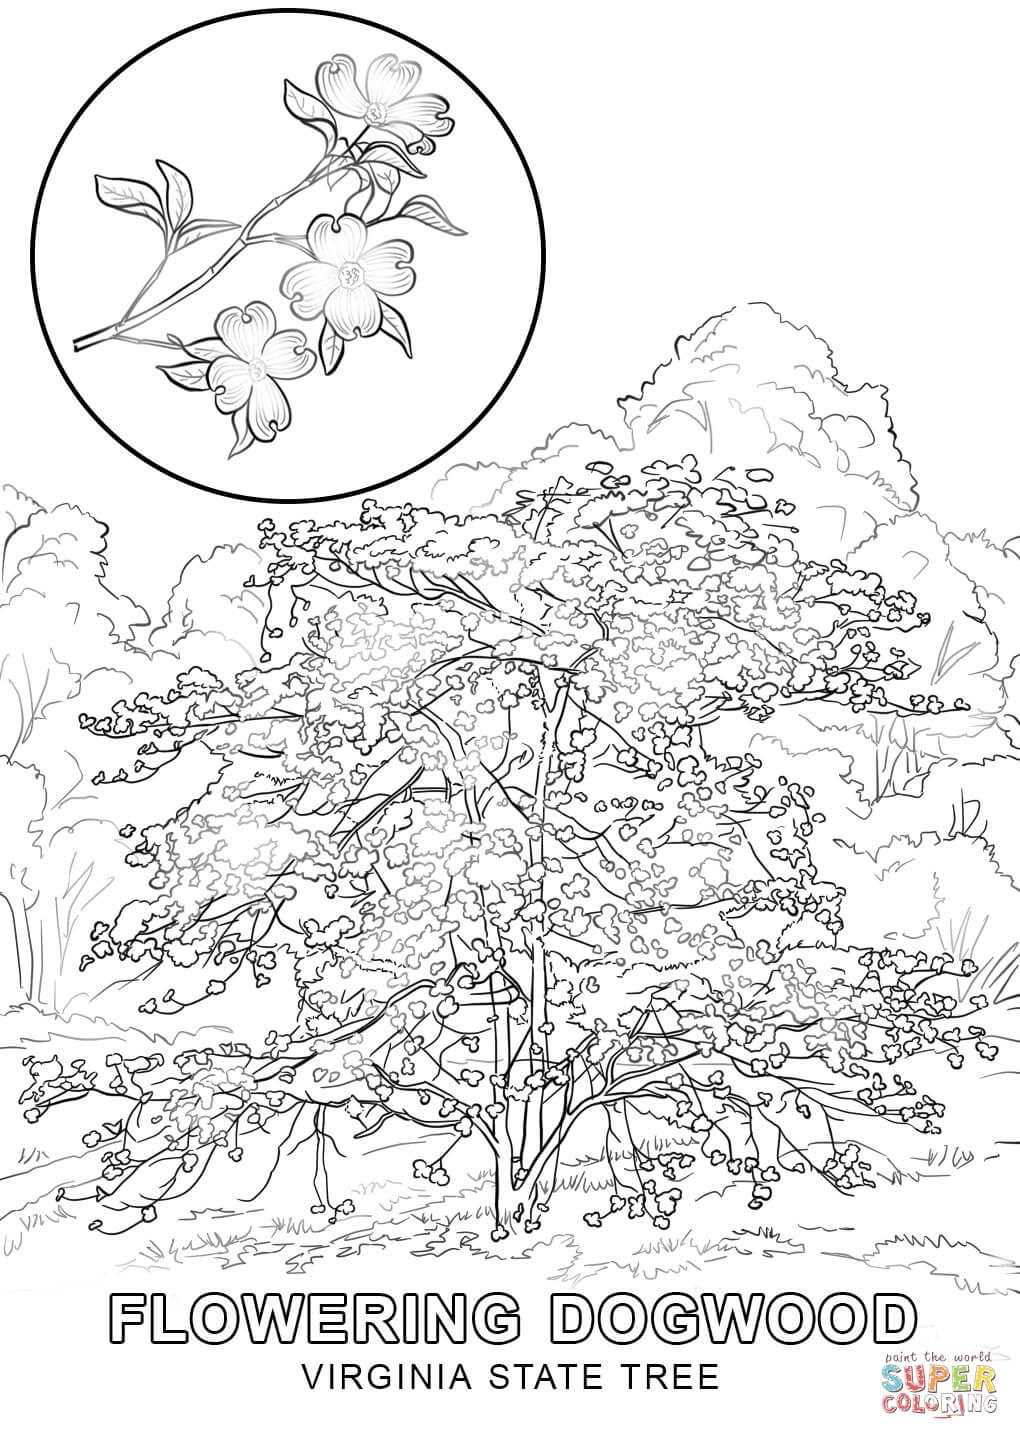 state tree coloring pages utah state tree coloring page free printable coloring pages coloring pages state tree